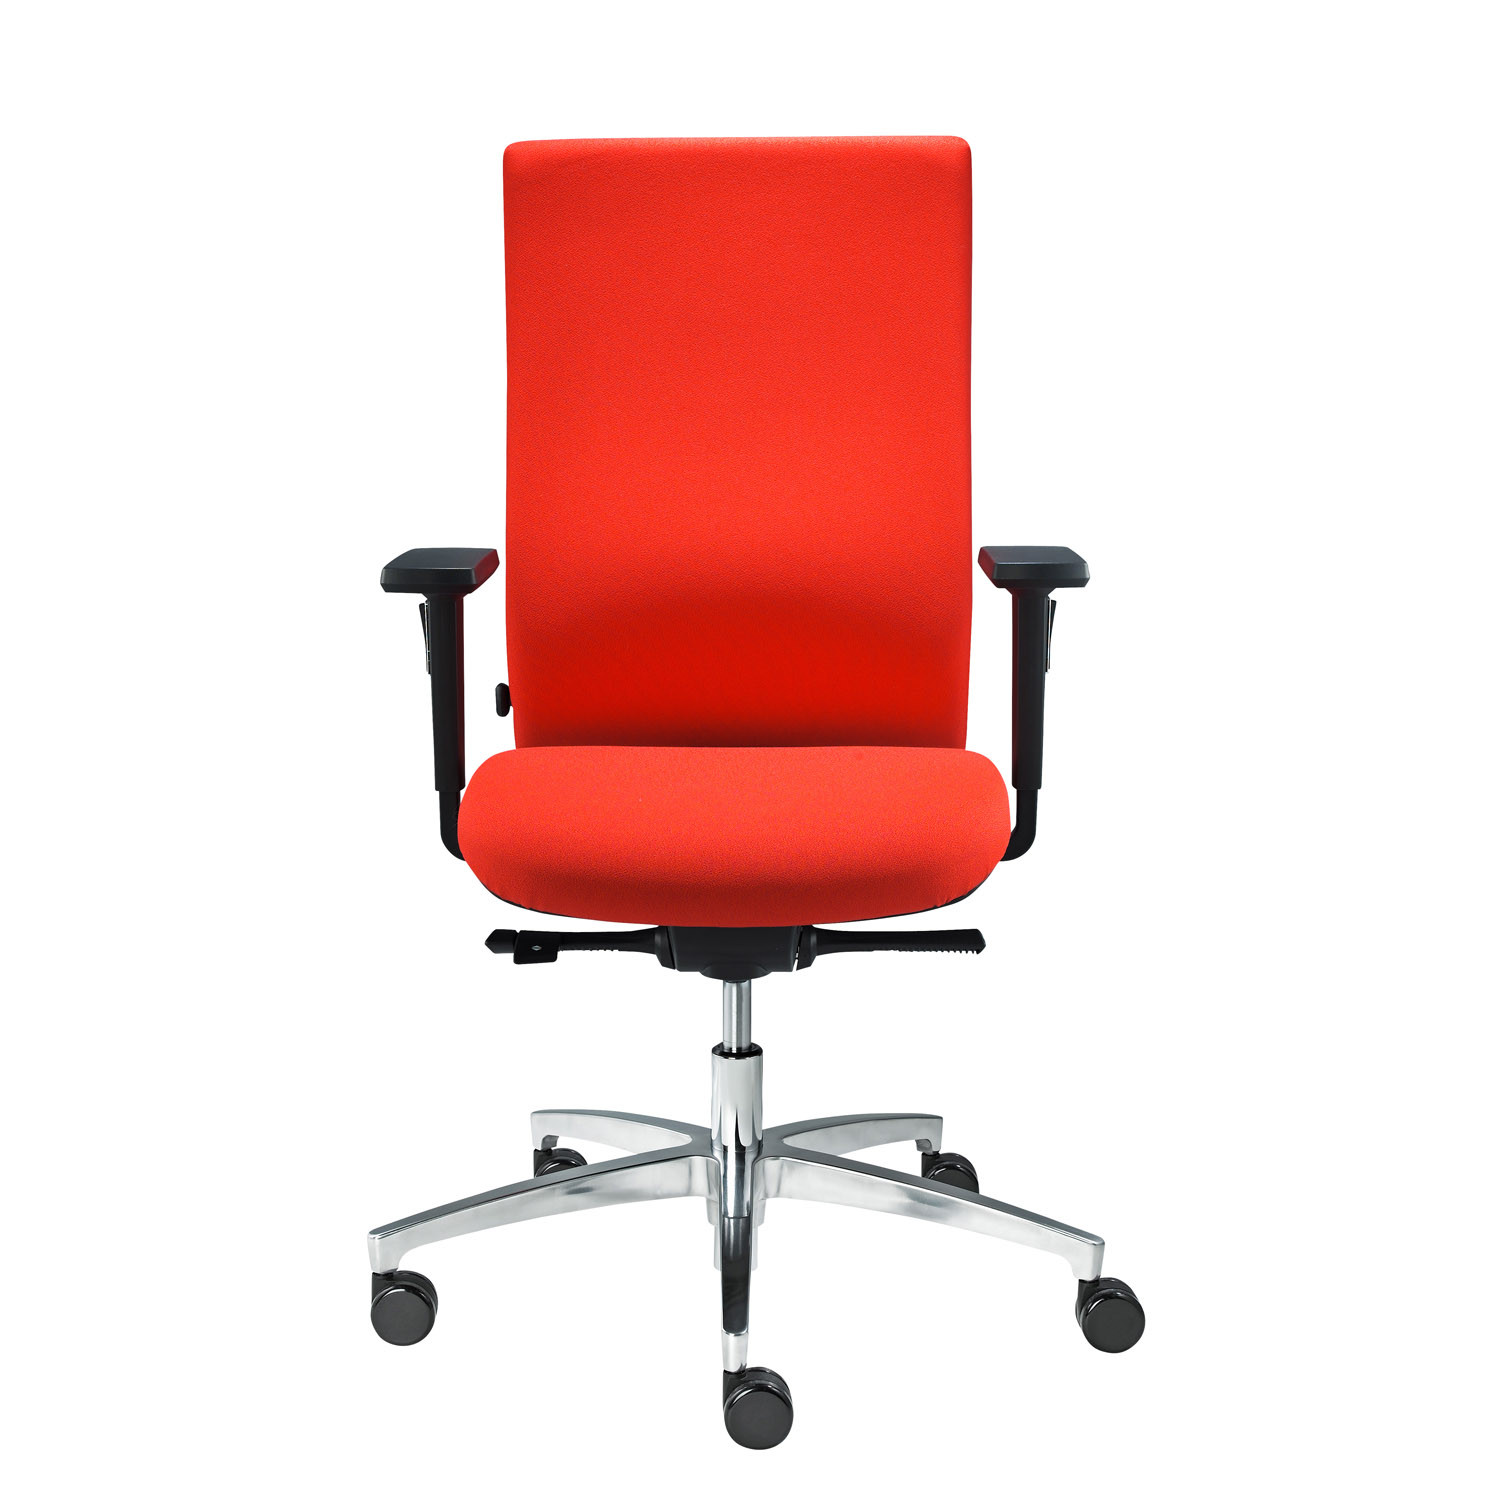 @Just Magic 2 Operator Chair from Dauphin